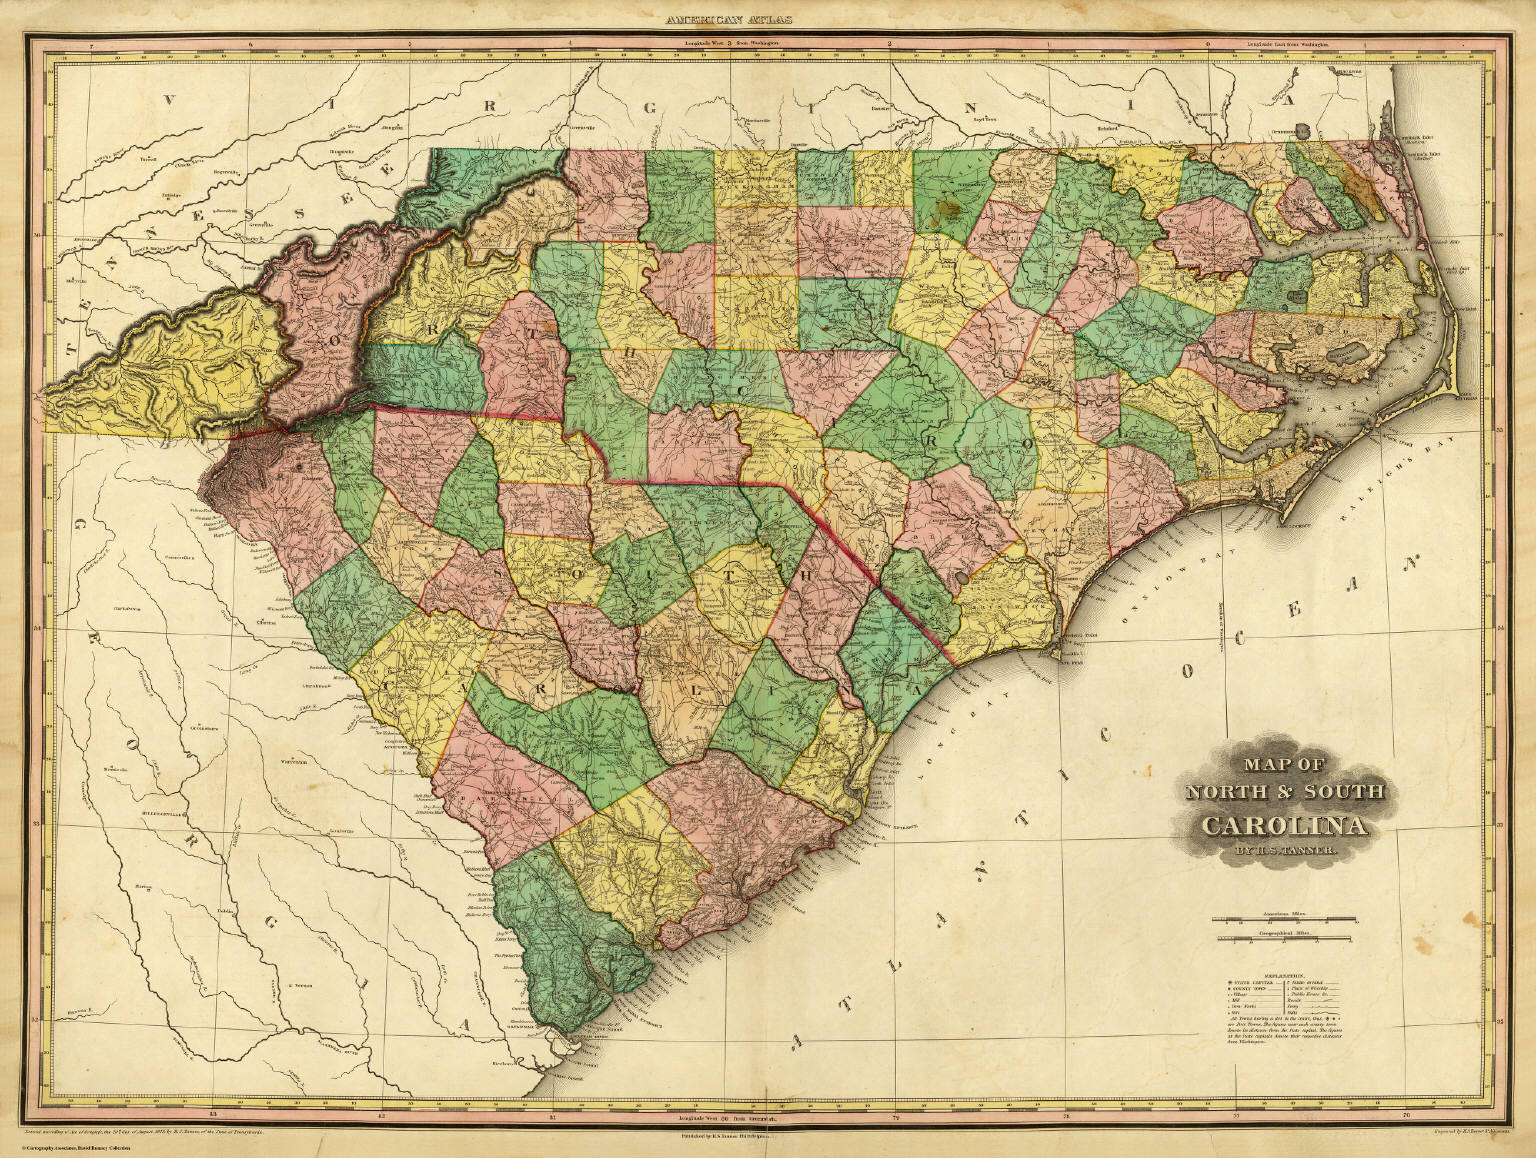 North And South Carolina Map Map of North & South Carolina. / Tanner, Henry S. / 1823